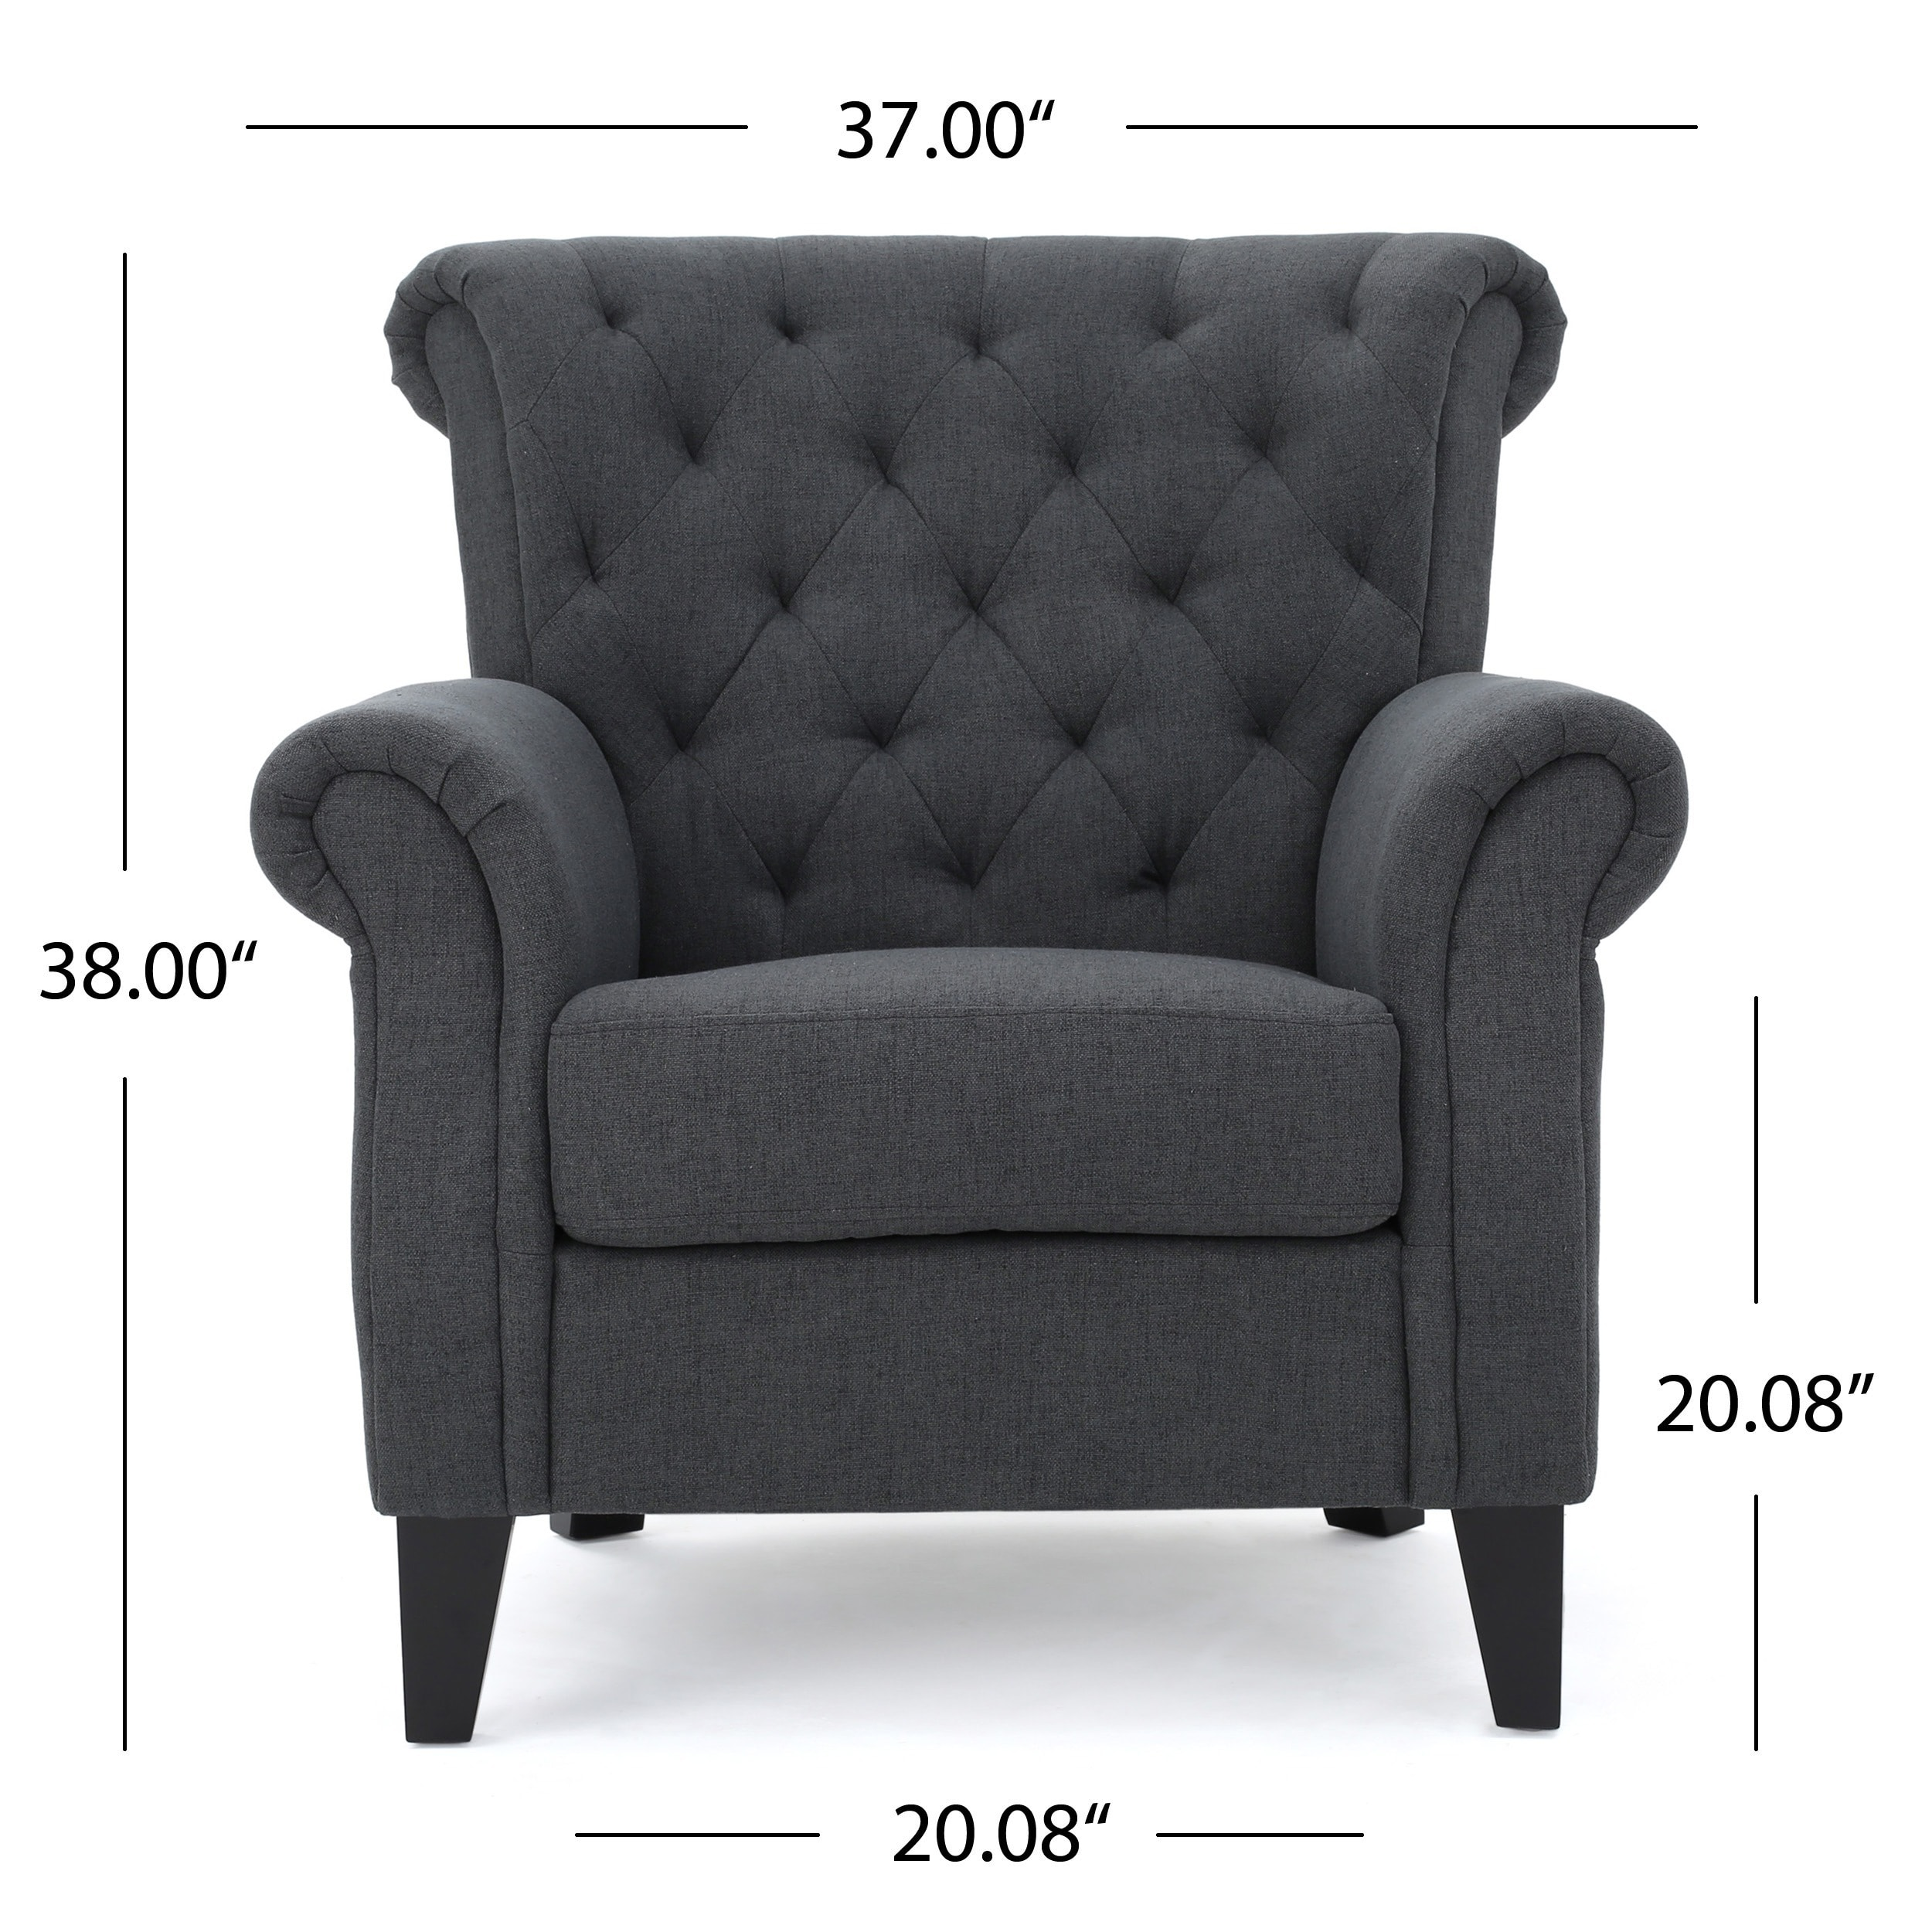 Tufted High Back Chair Merritt High Back Tufted Fabric Club Chair By Christopher Knight Home